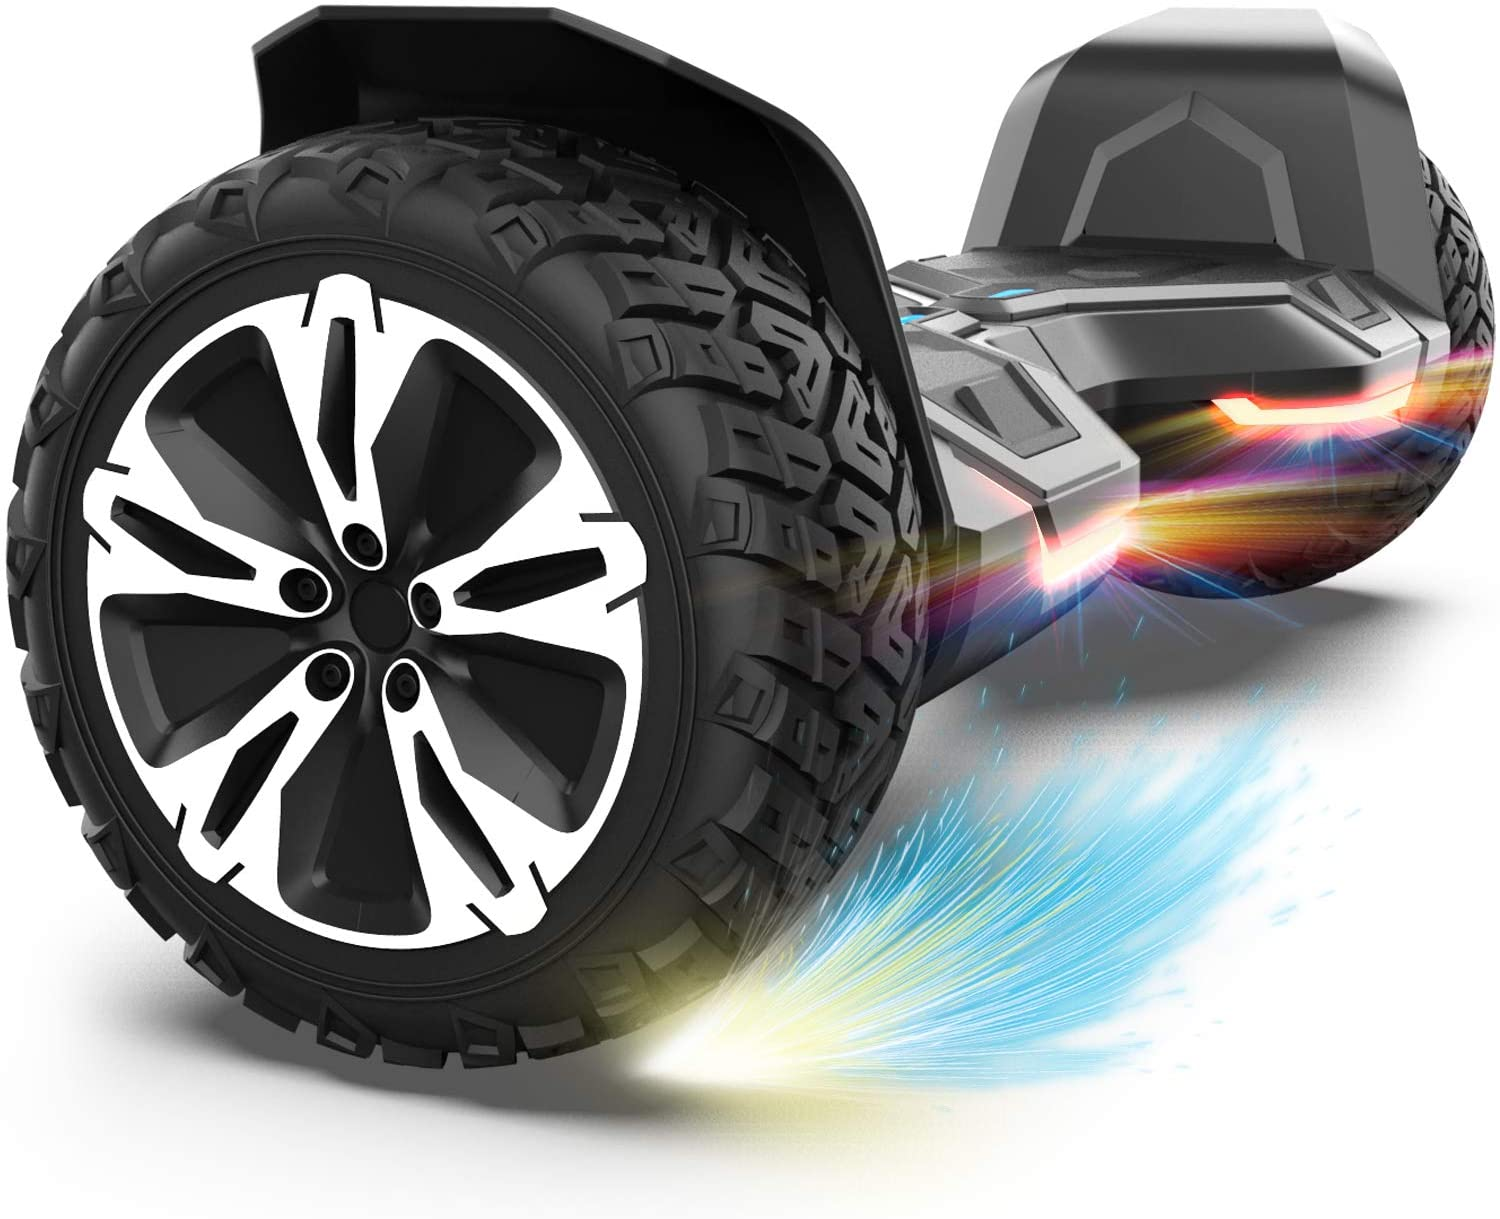 gyroor off road hoverboard